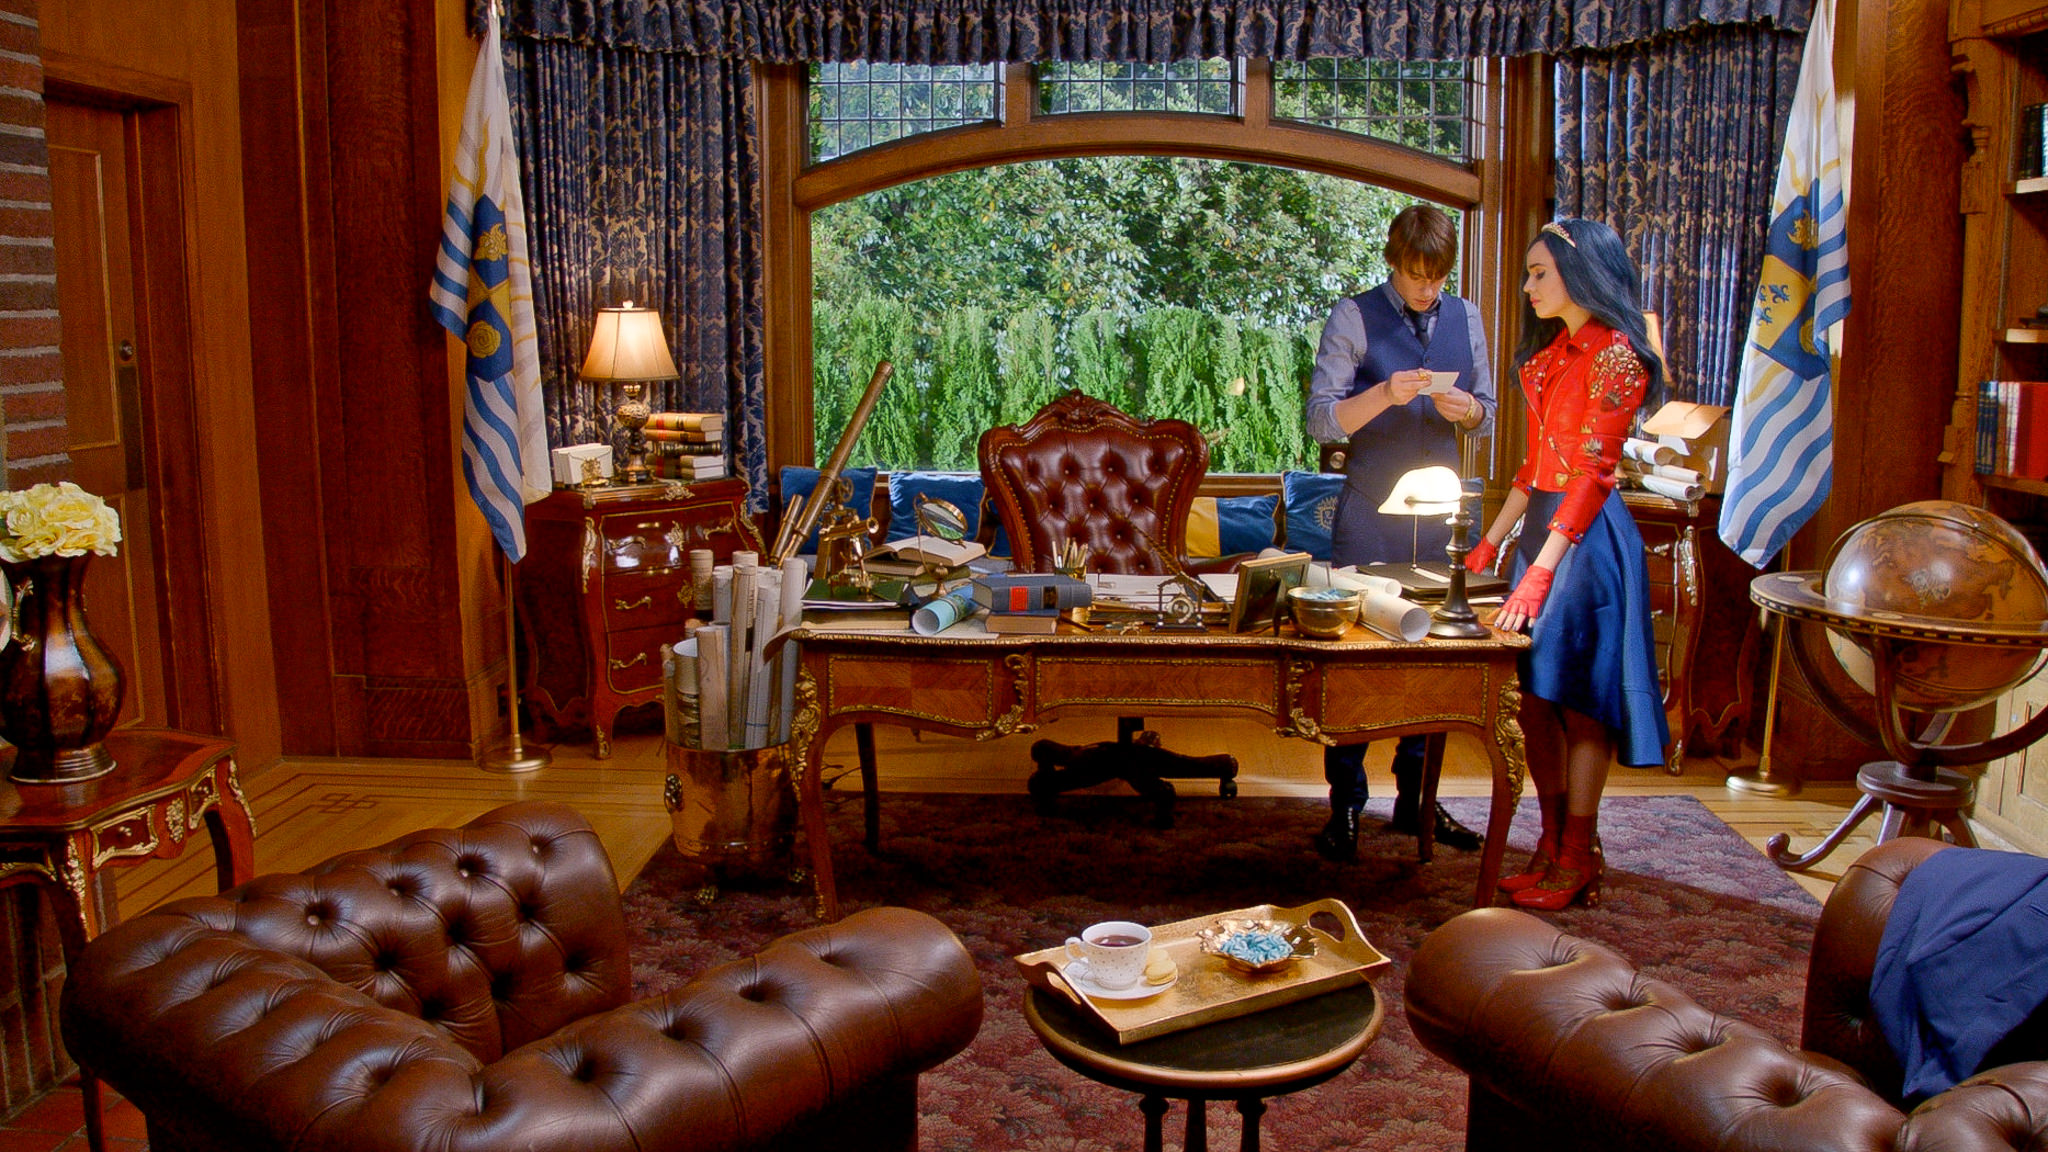 Now the King of Auradon, young King Ben (Mitchell Hope) has an office befitting his station. Here Evie (Sofia Carson) brings Ben bad news.